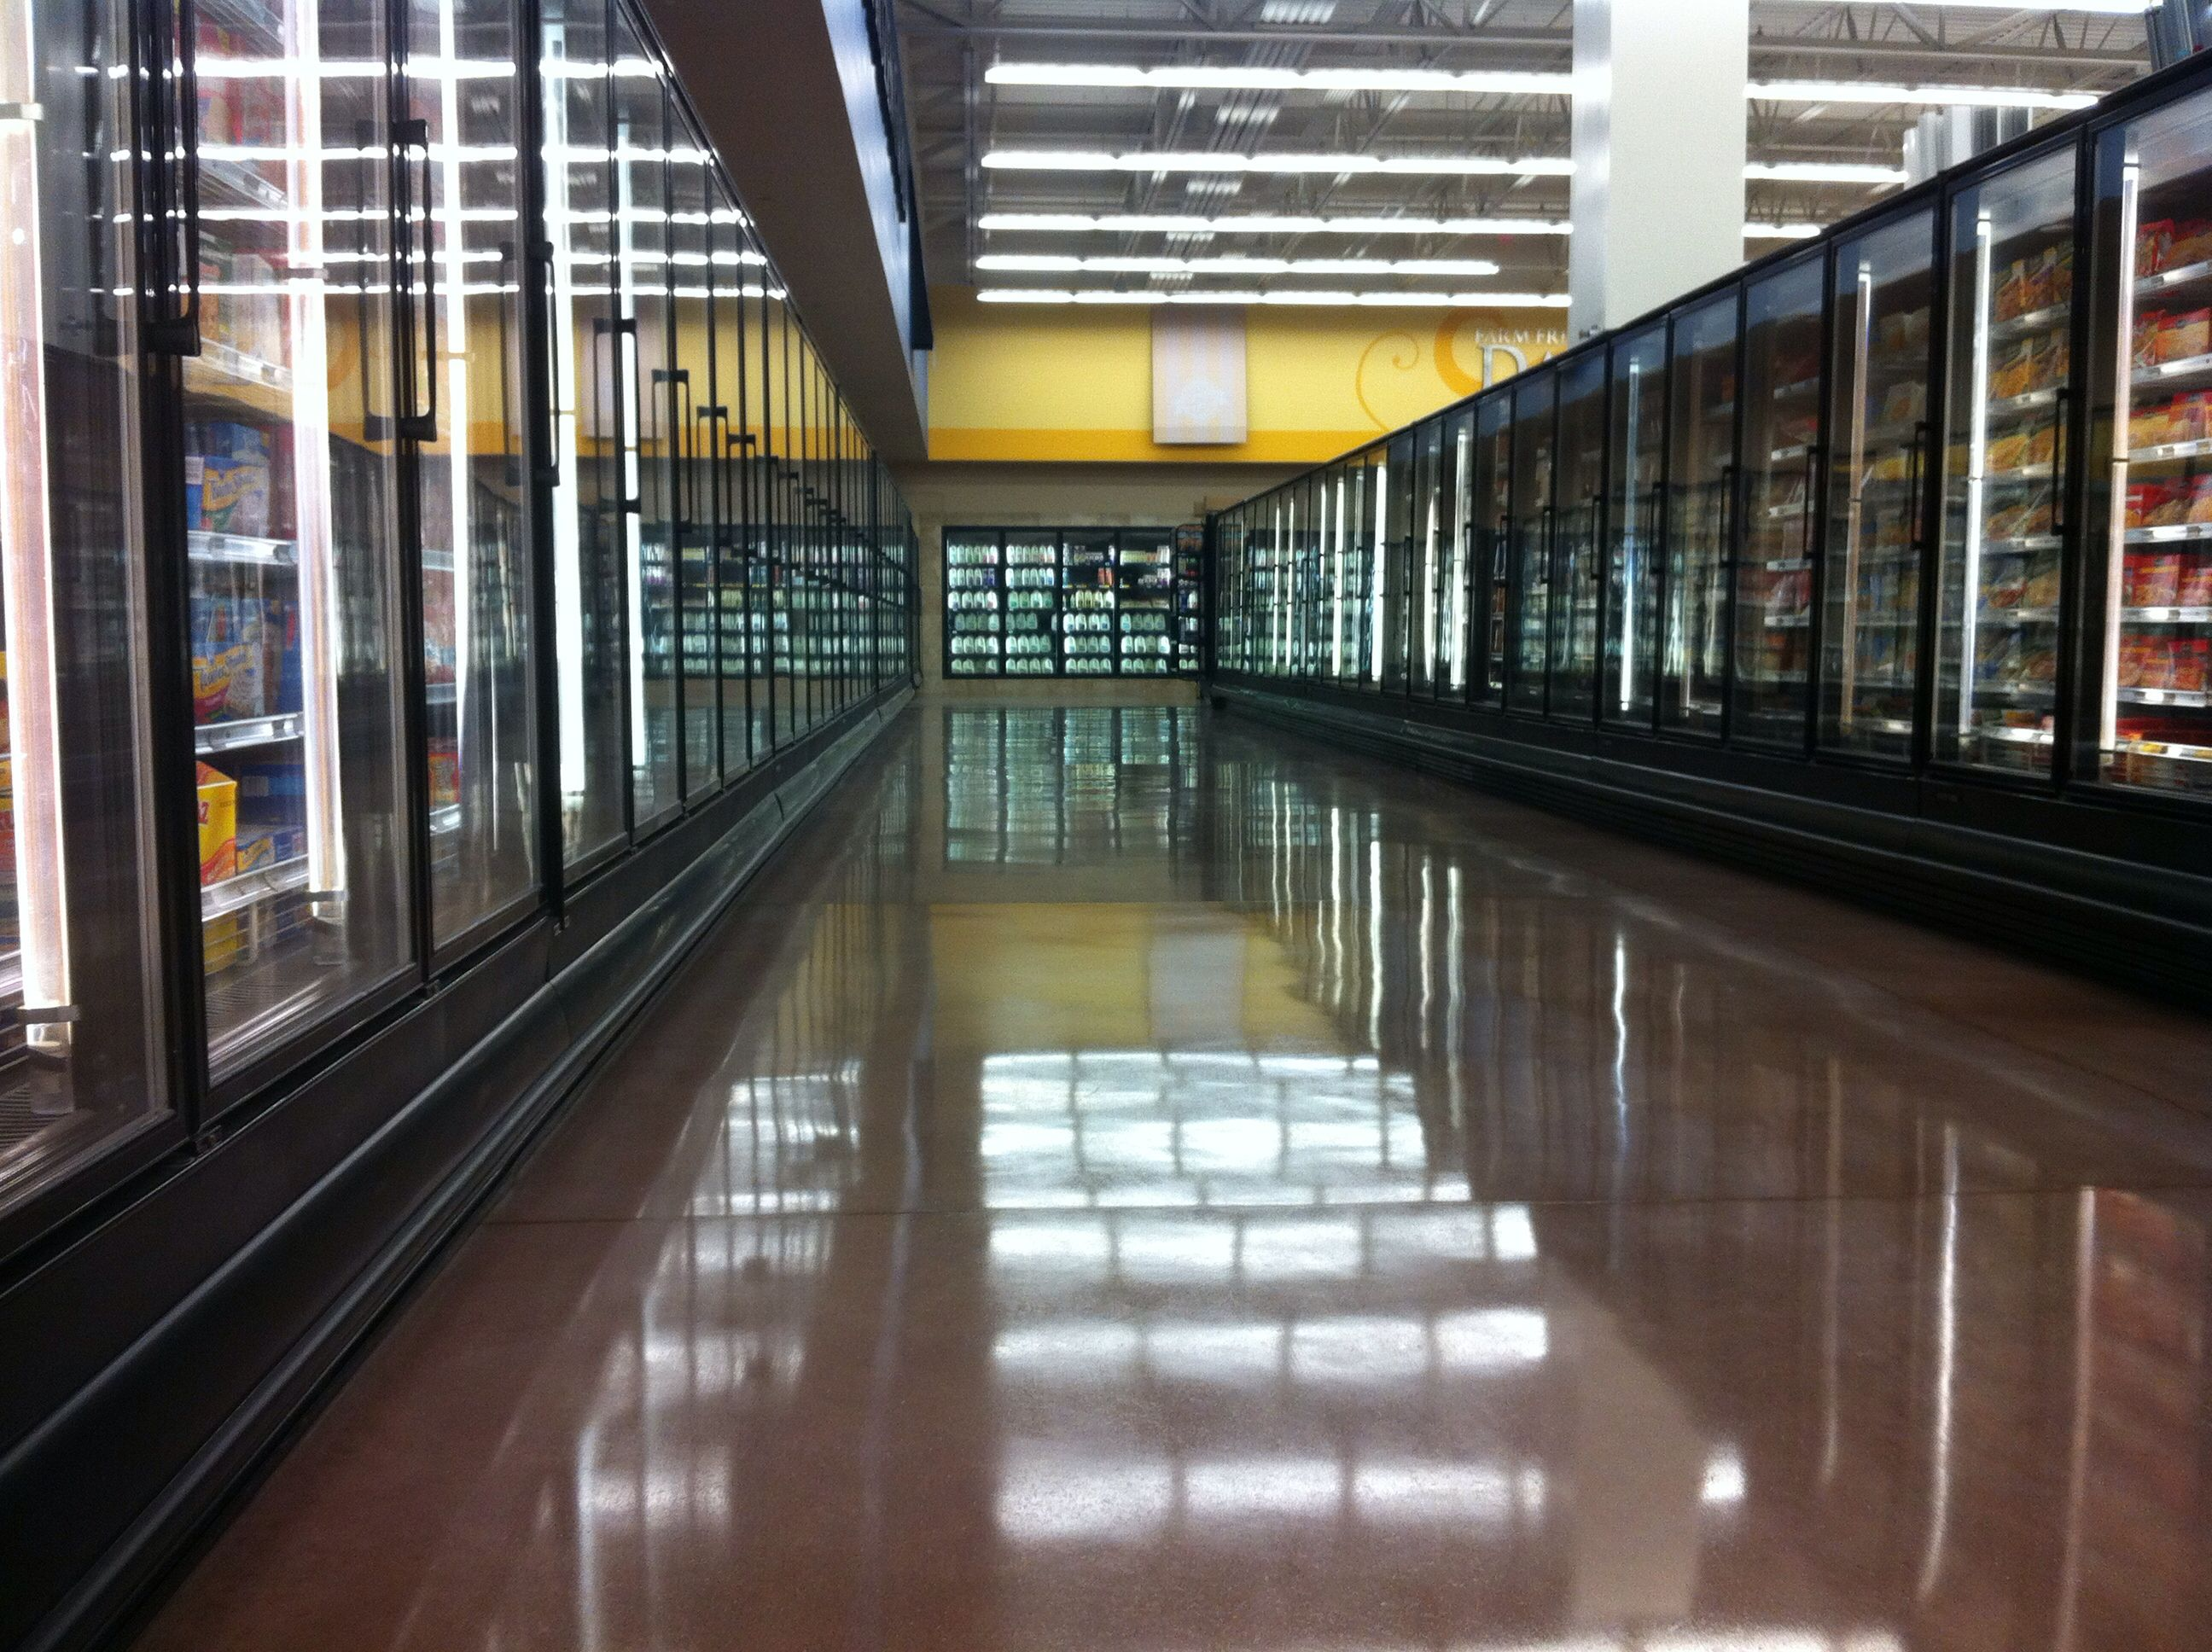 Polished concrete in a grocery store